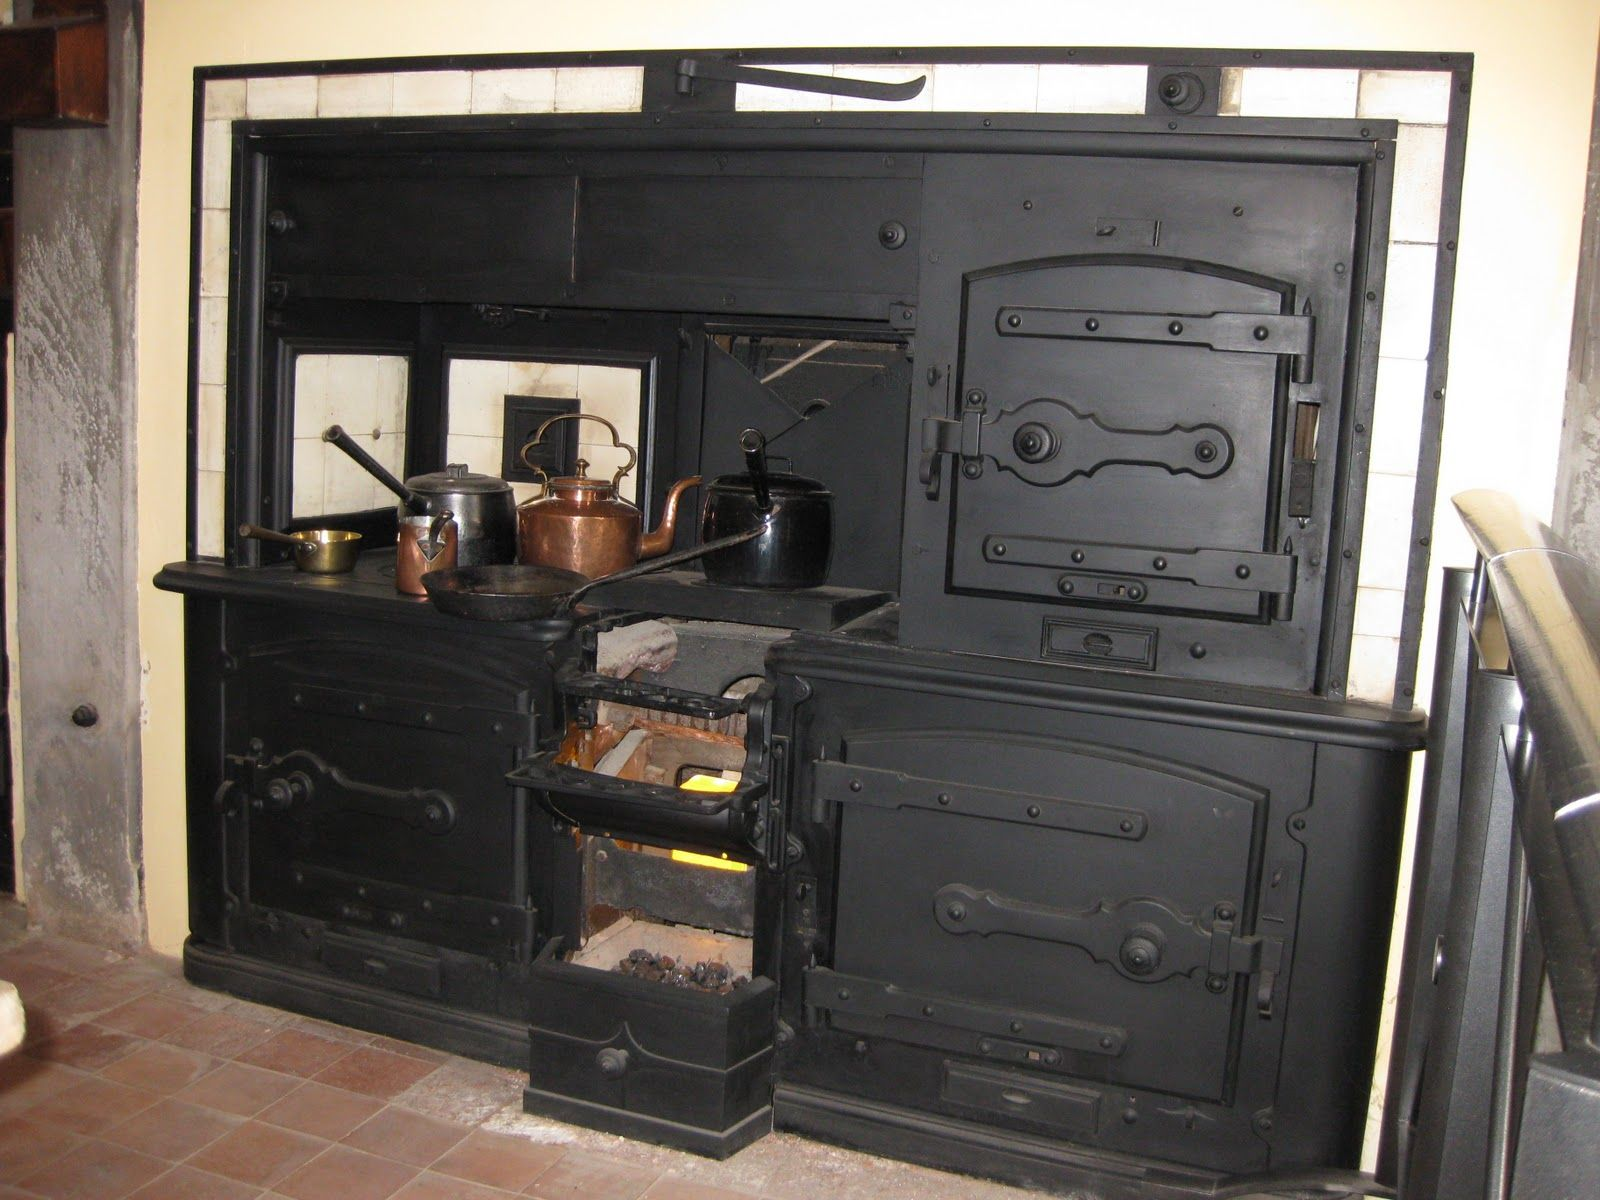 house home garden wood stove wood stove cooking stove on outdoor kitchen vintage id=49373